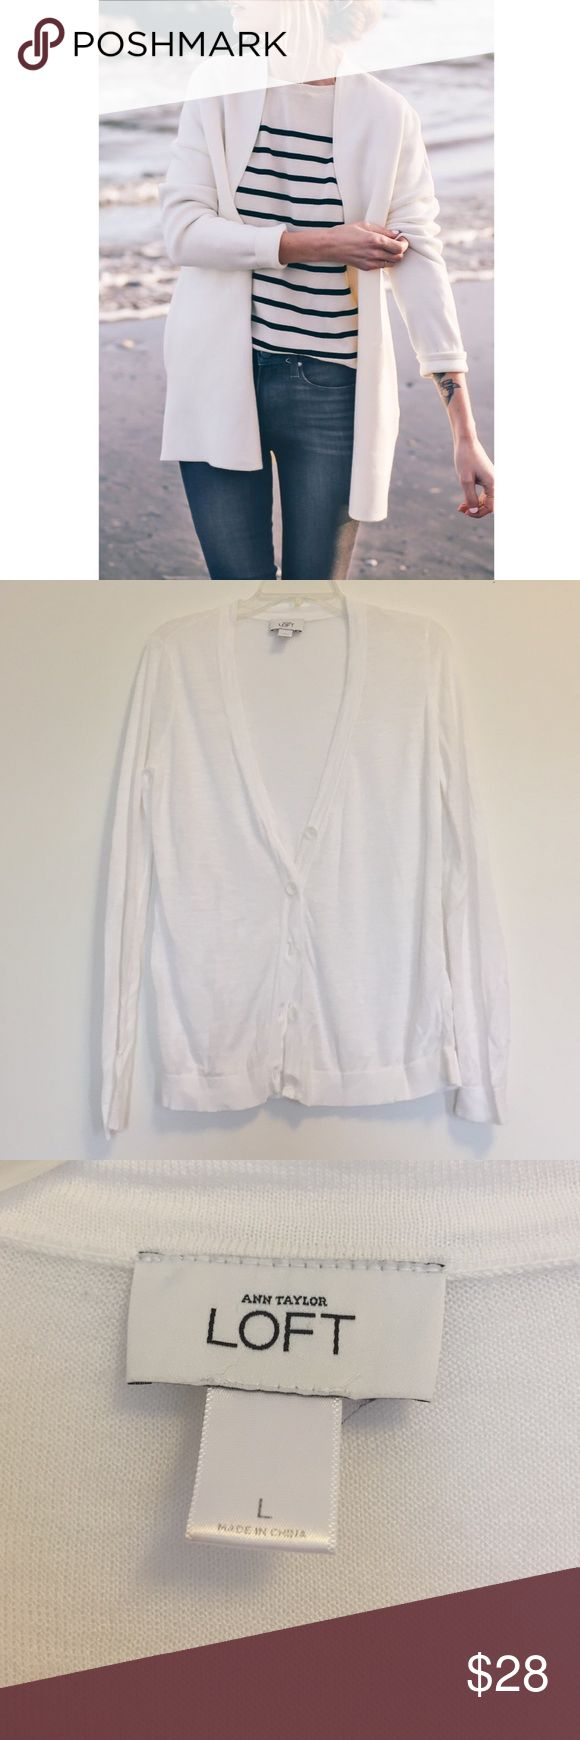 LOFT Long White Cardigan Loft Cardigan, white button down. Cover photo is for style suggestion only and is NOT the same sweater. Photo is not mine either. Sweater is a size large, super lightweight and perfect to throw over any outfit LOFT Sweaters Cardigans